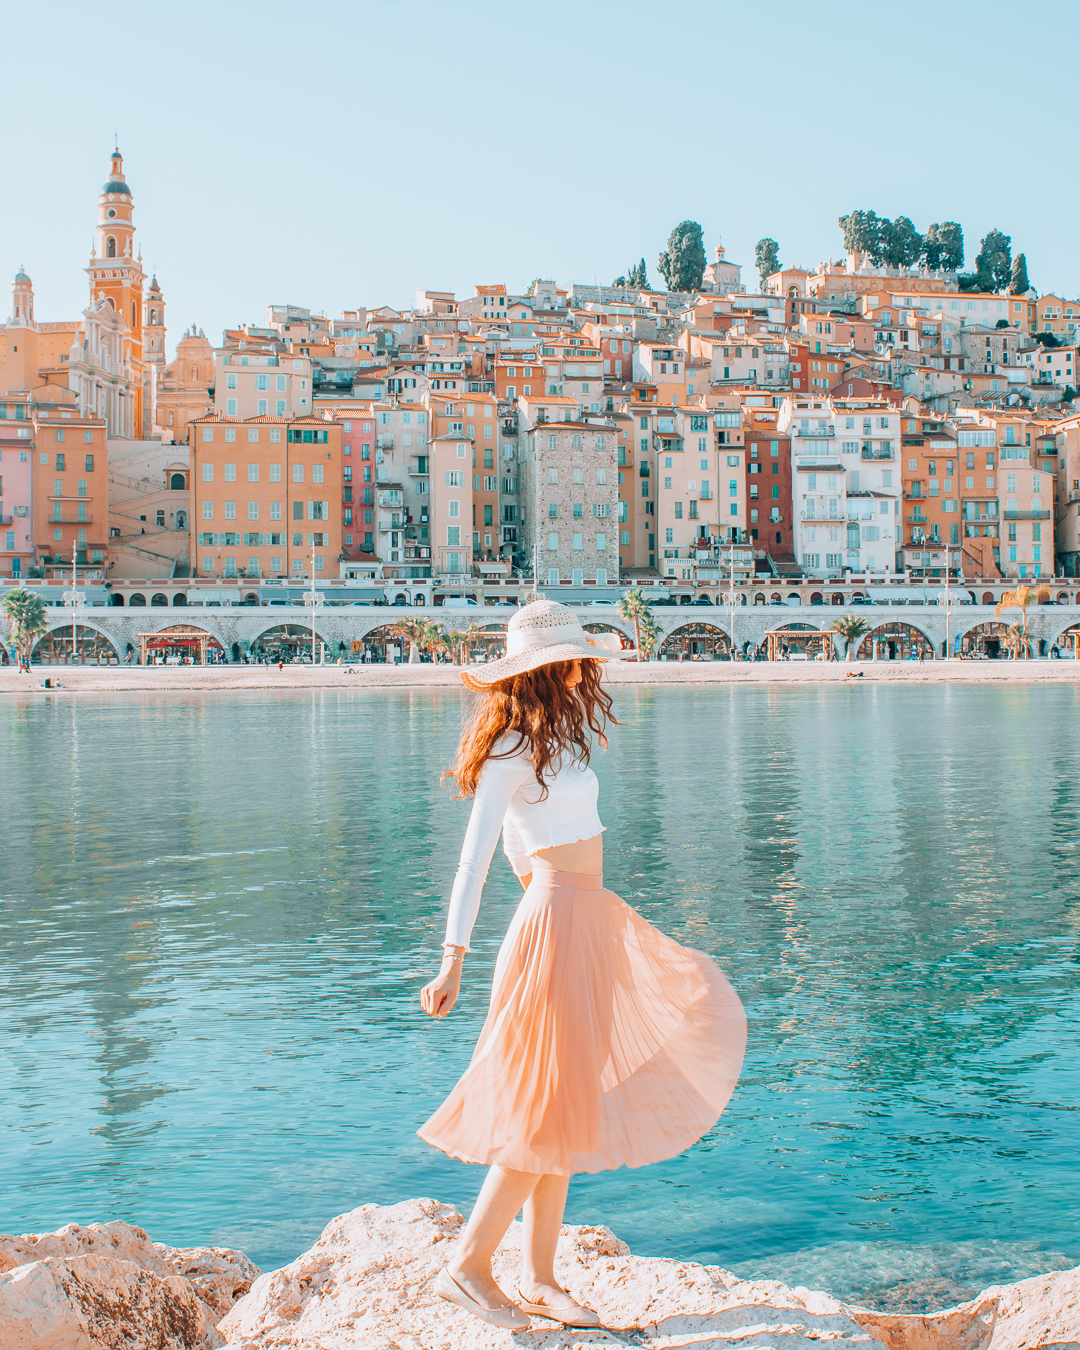 Girl in Menton with a swirling skirt